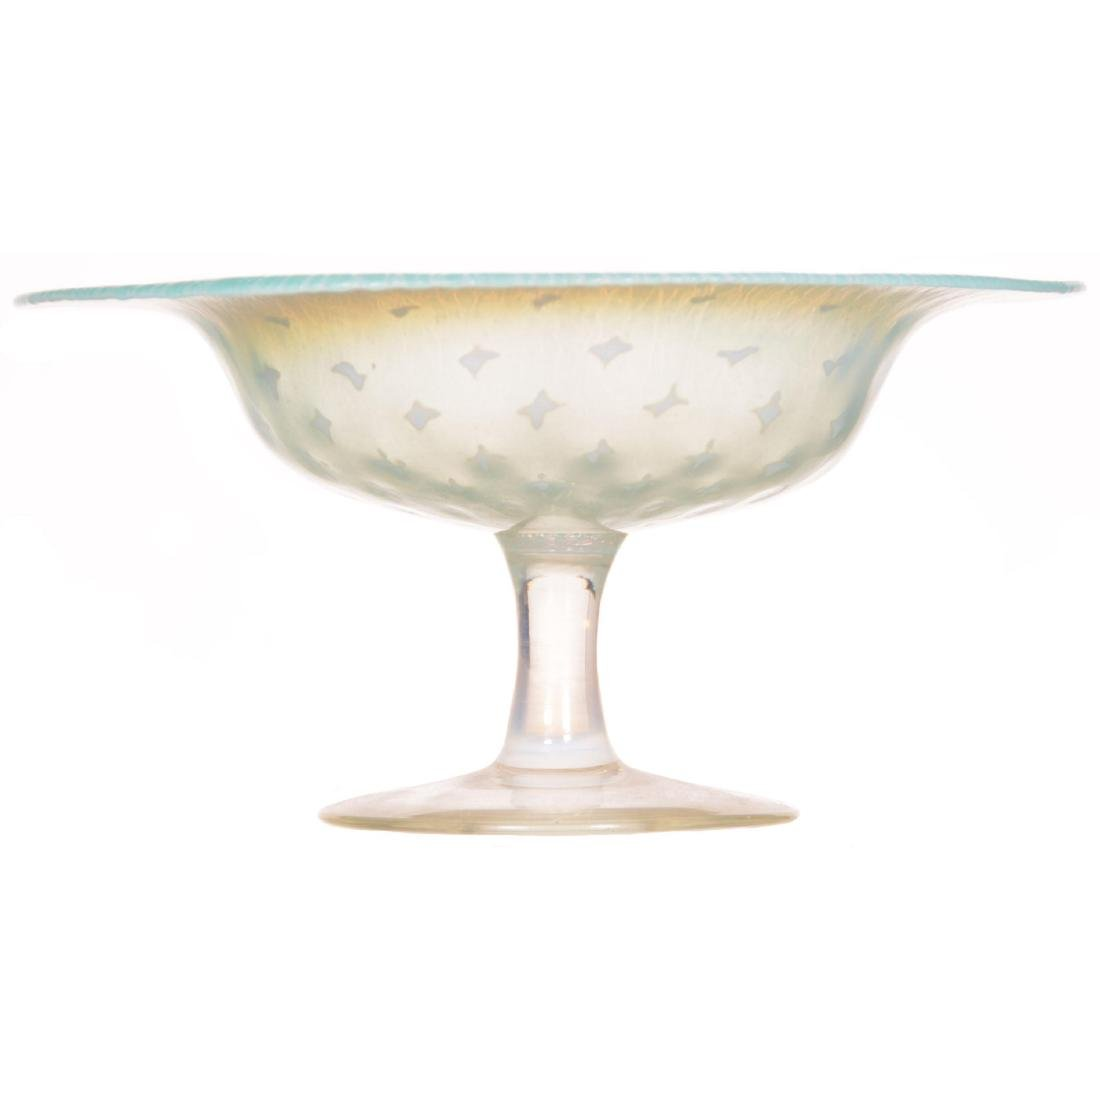 Tiffany Art Glass Compote